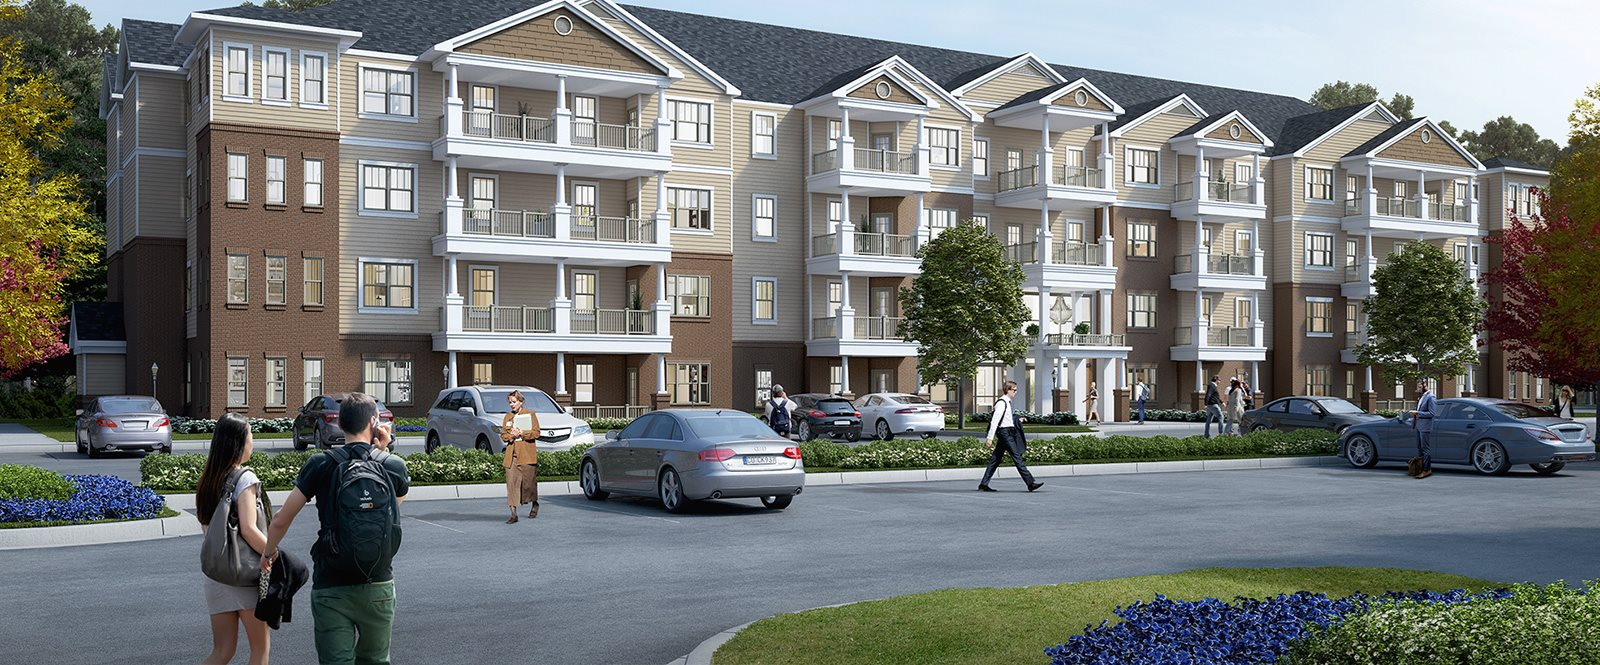 Apartments Available In Most Desirable Location of City at Abberly Avera Apartment Homes, Manassas, Virginia